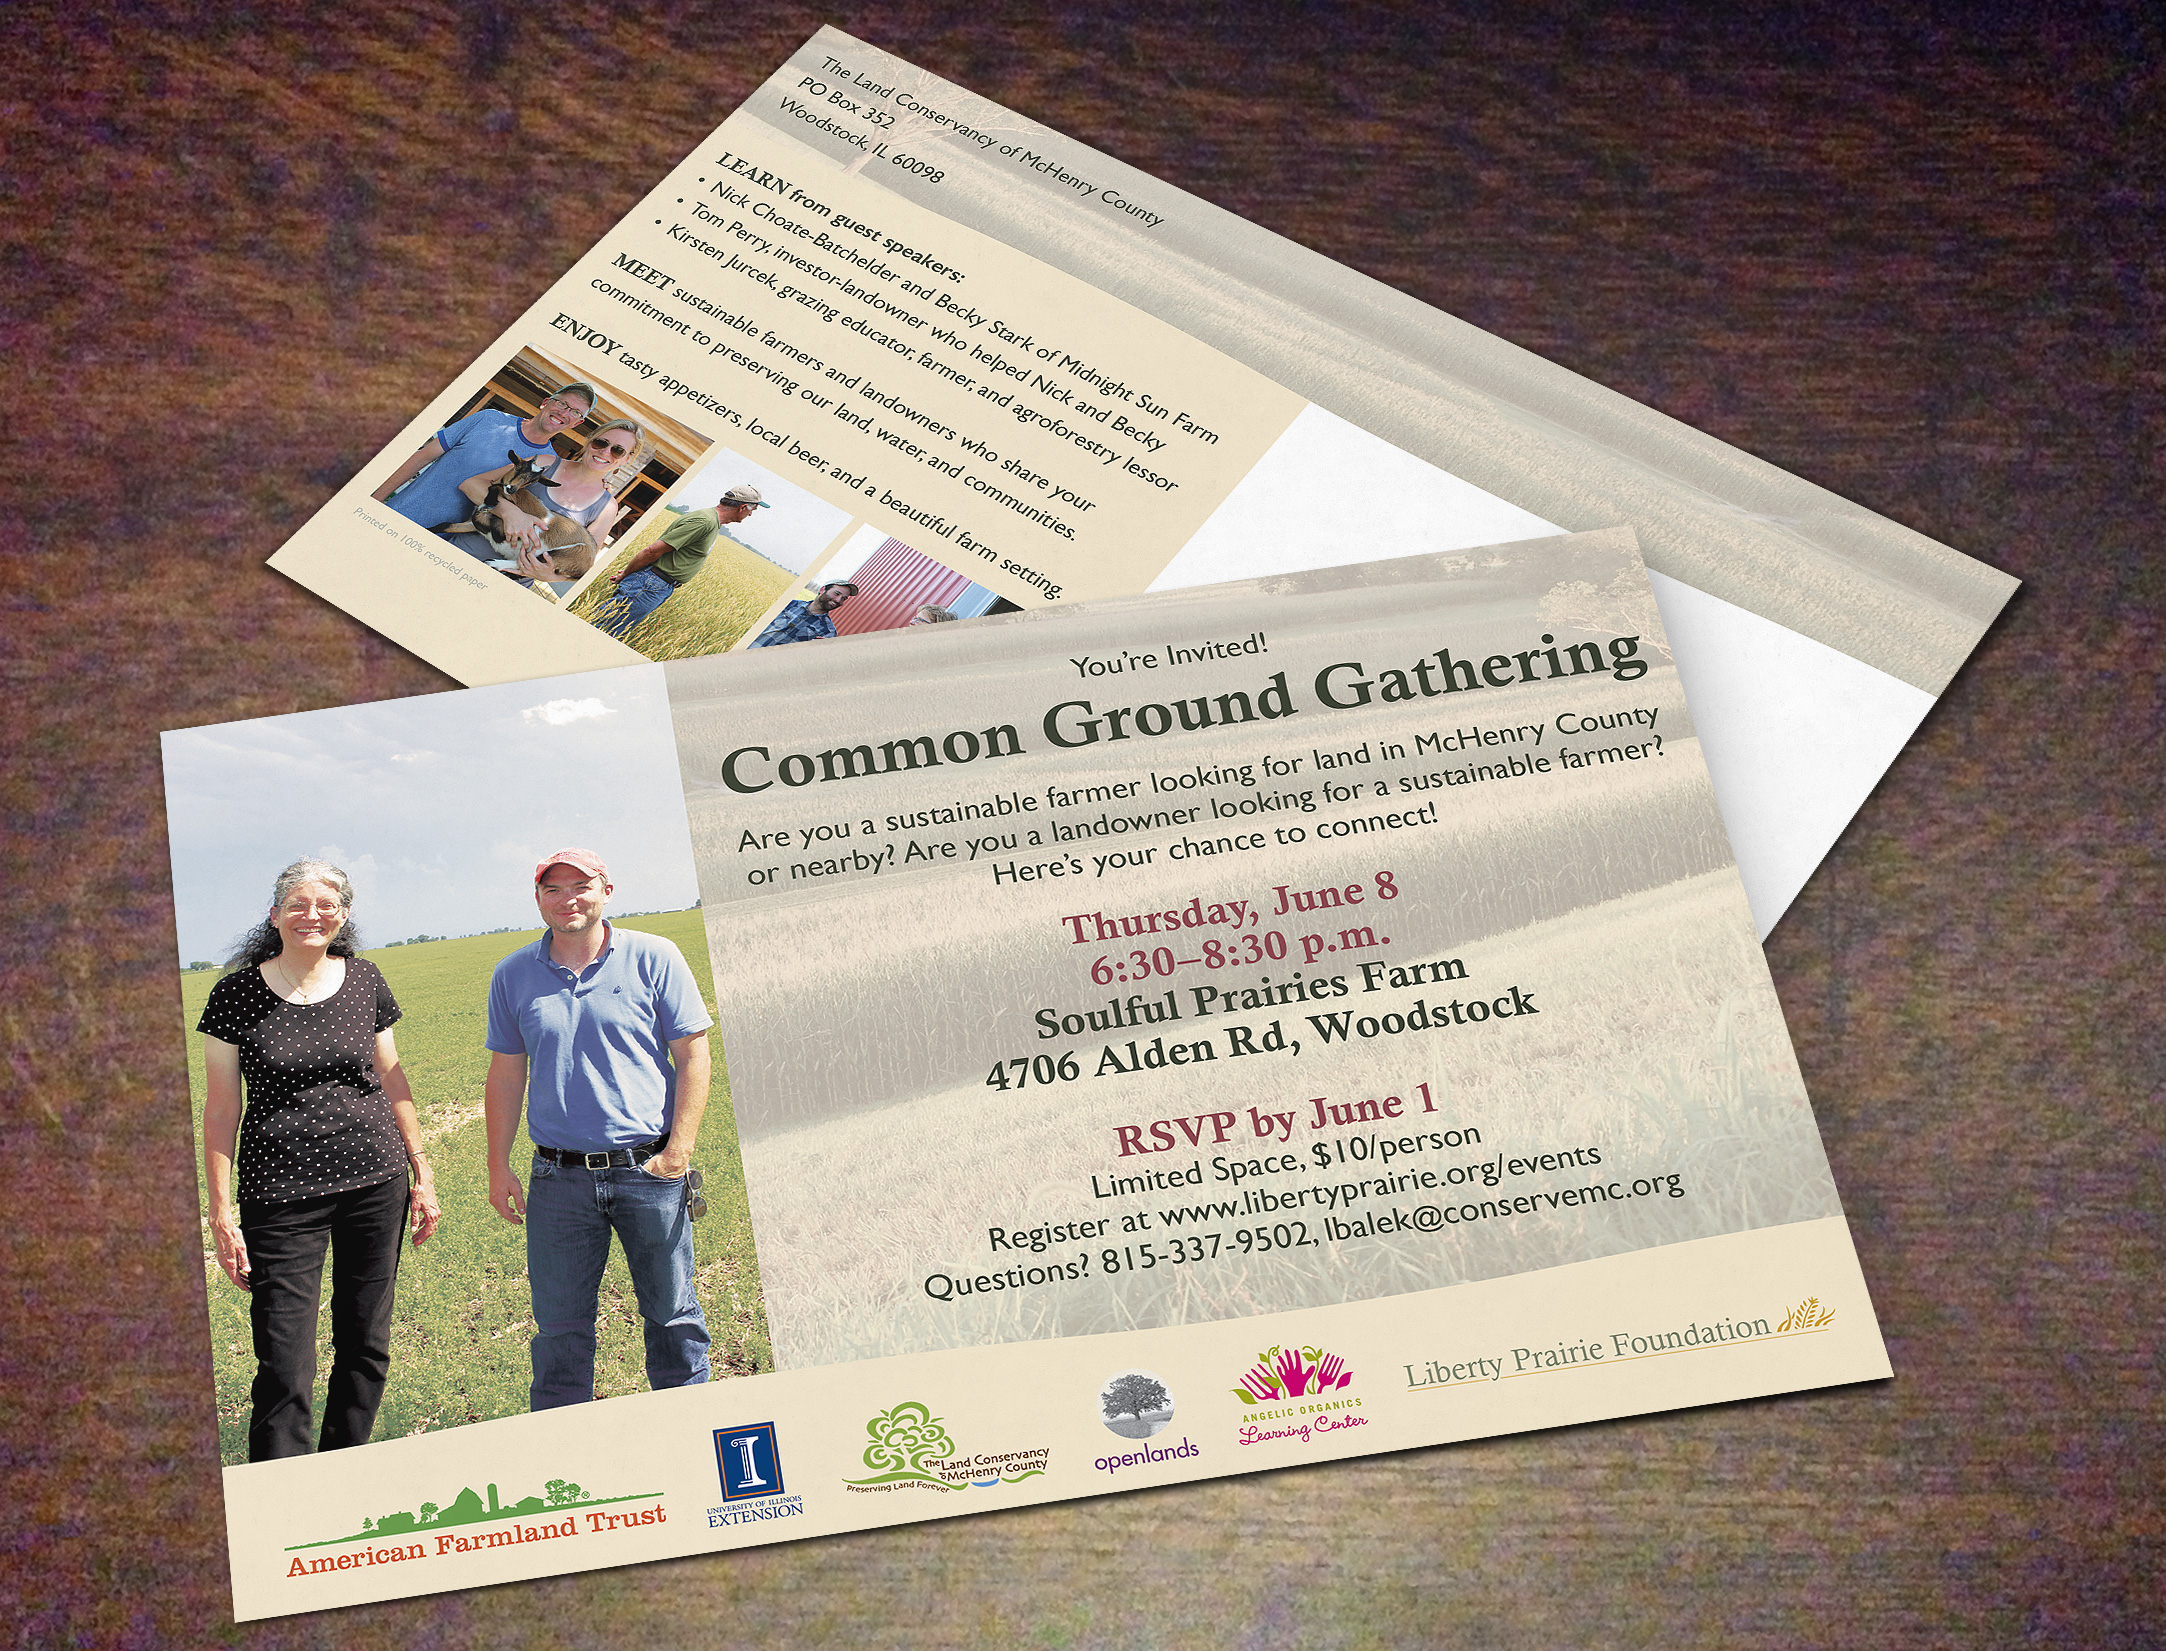 Event promotion card by Adunate for Liberty Prairie Foundation, Grayslake, IL